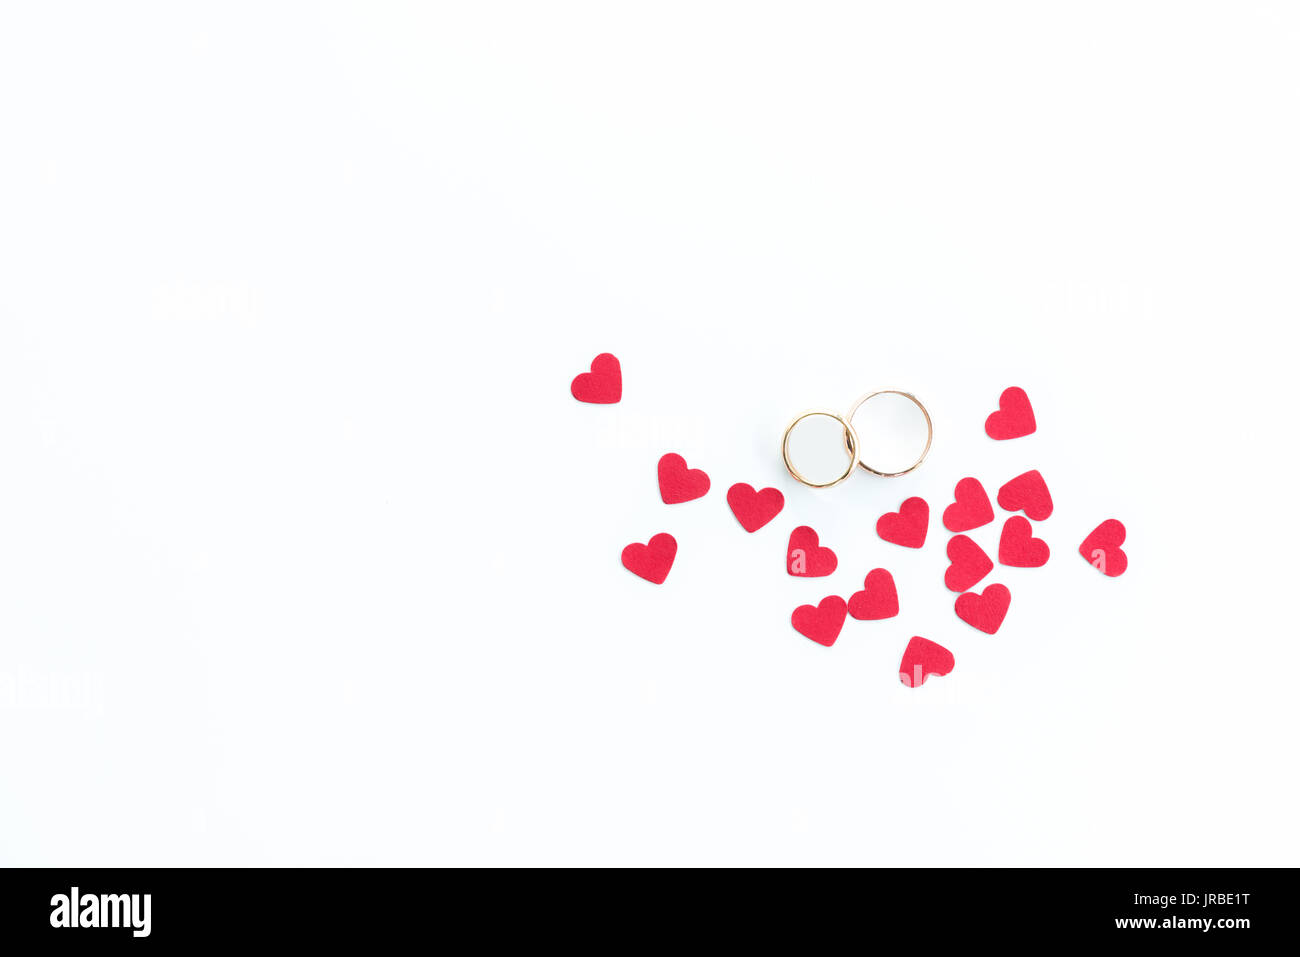 Top view of golden wedding rings and pink hearts symbols isolated top view of golden wedding rings and pink hearts symbols isolated on white wedding rings background biocorpaavc